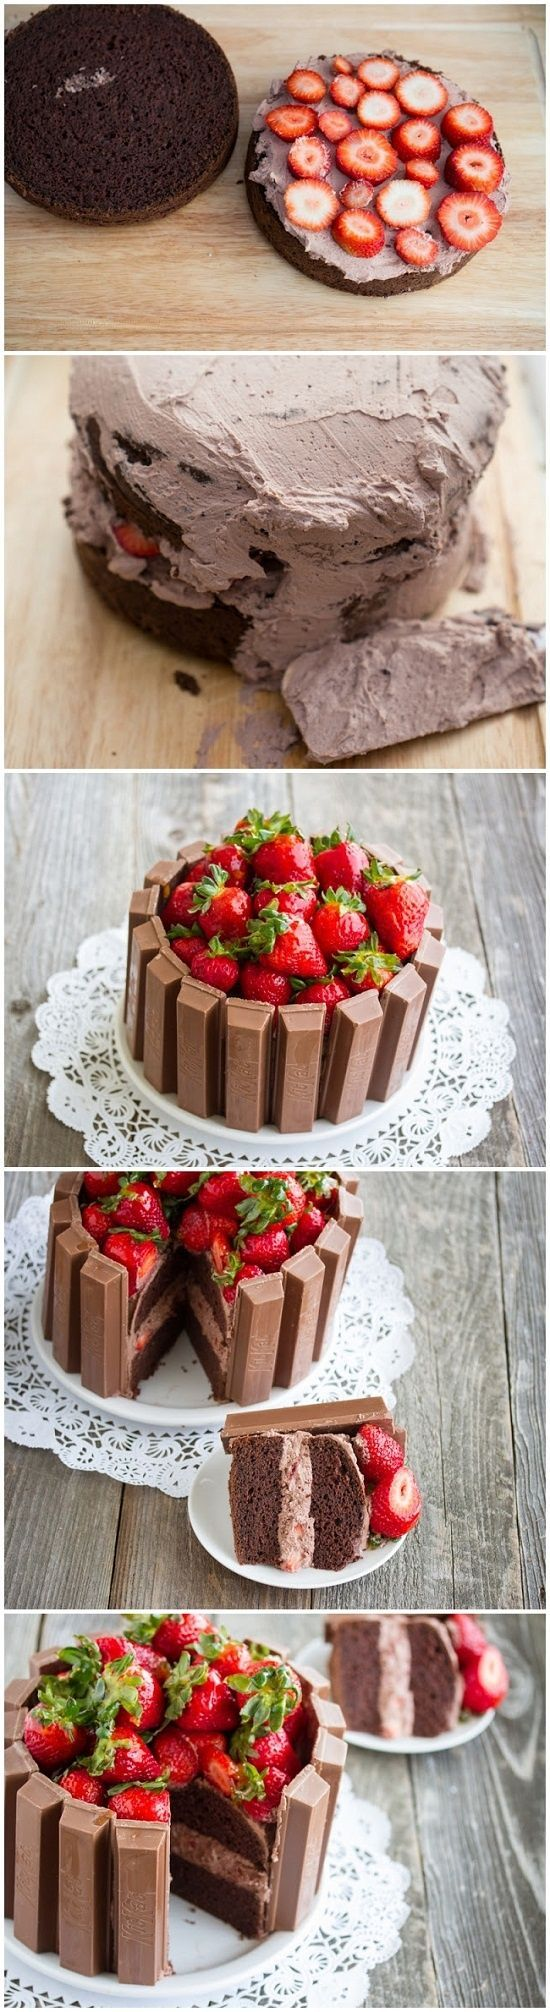 Kit Kat Cake...I just like the idea of strawberries in between the layers!! will be making this!!!